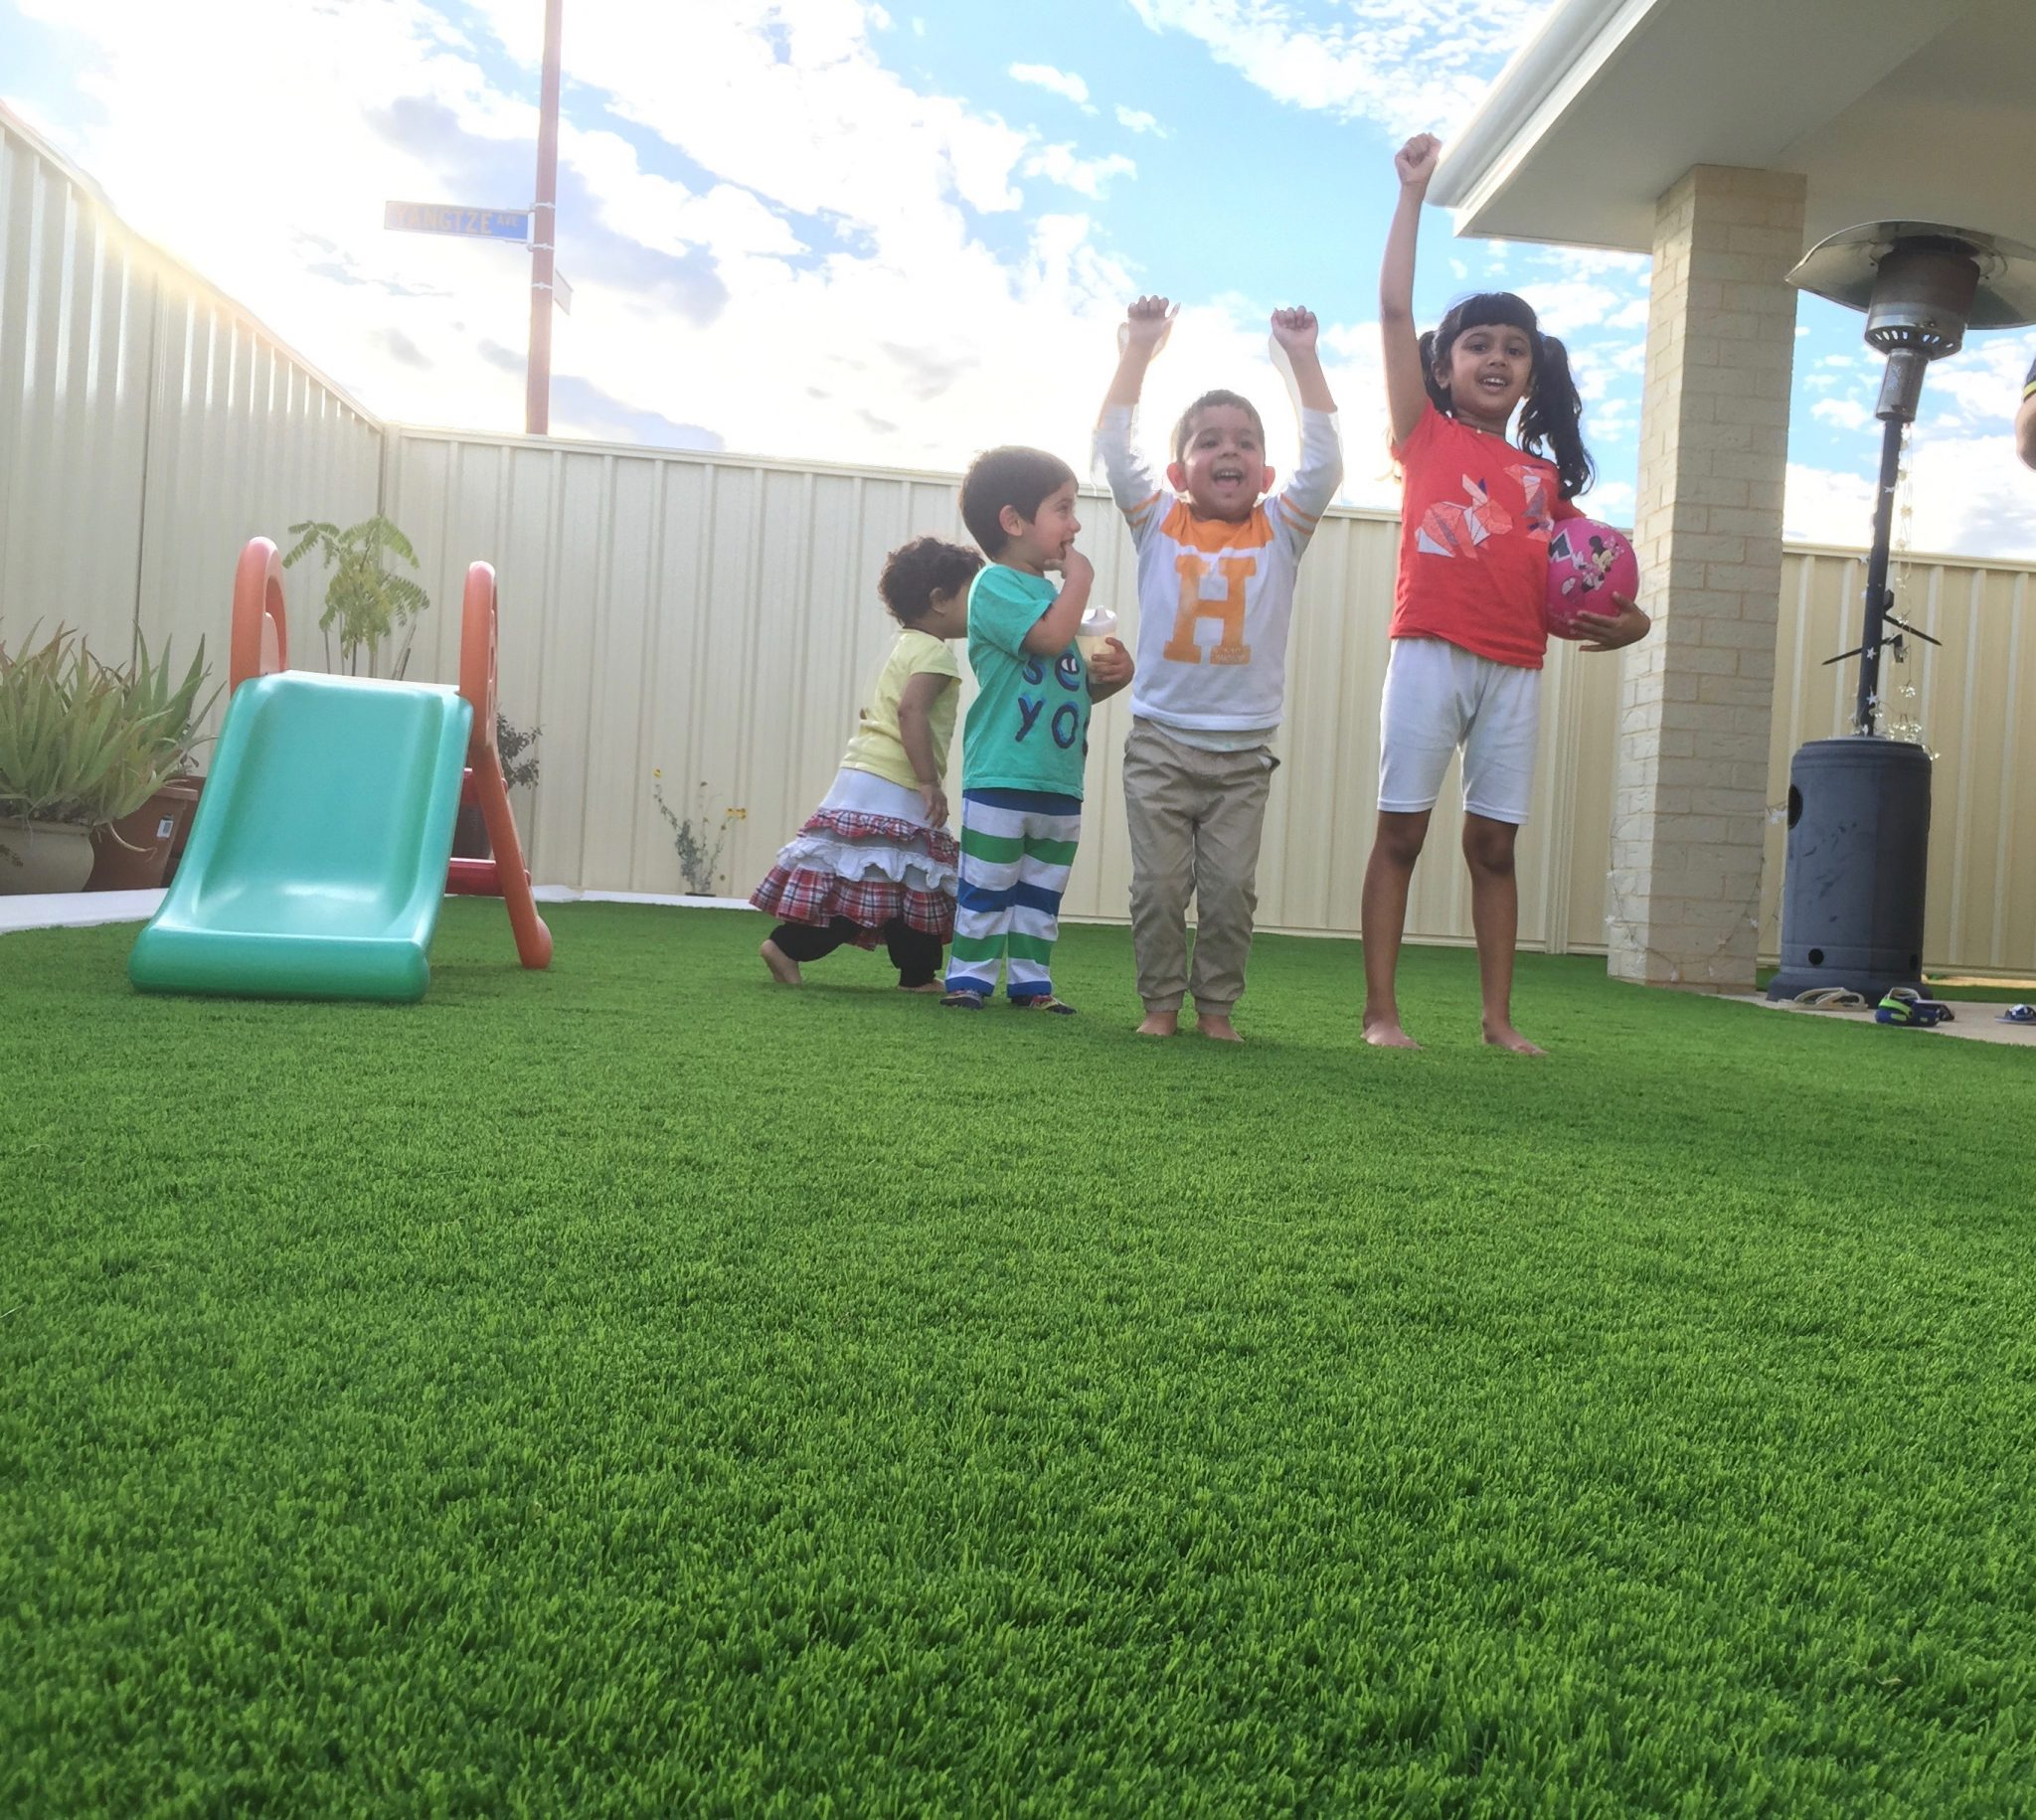 synthetic grass cost Perth kids playing on artificial grass